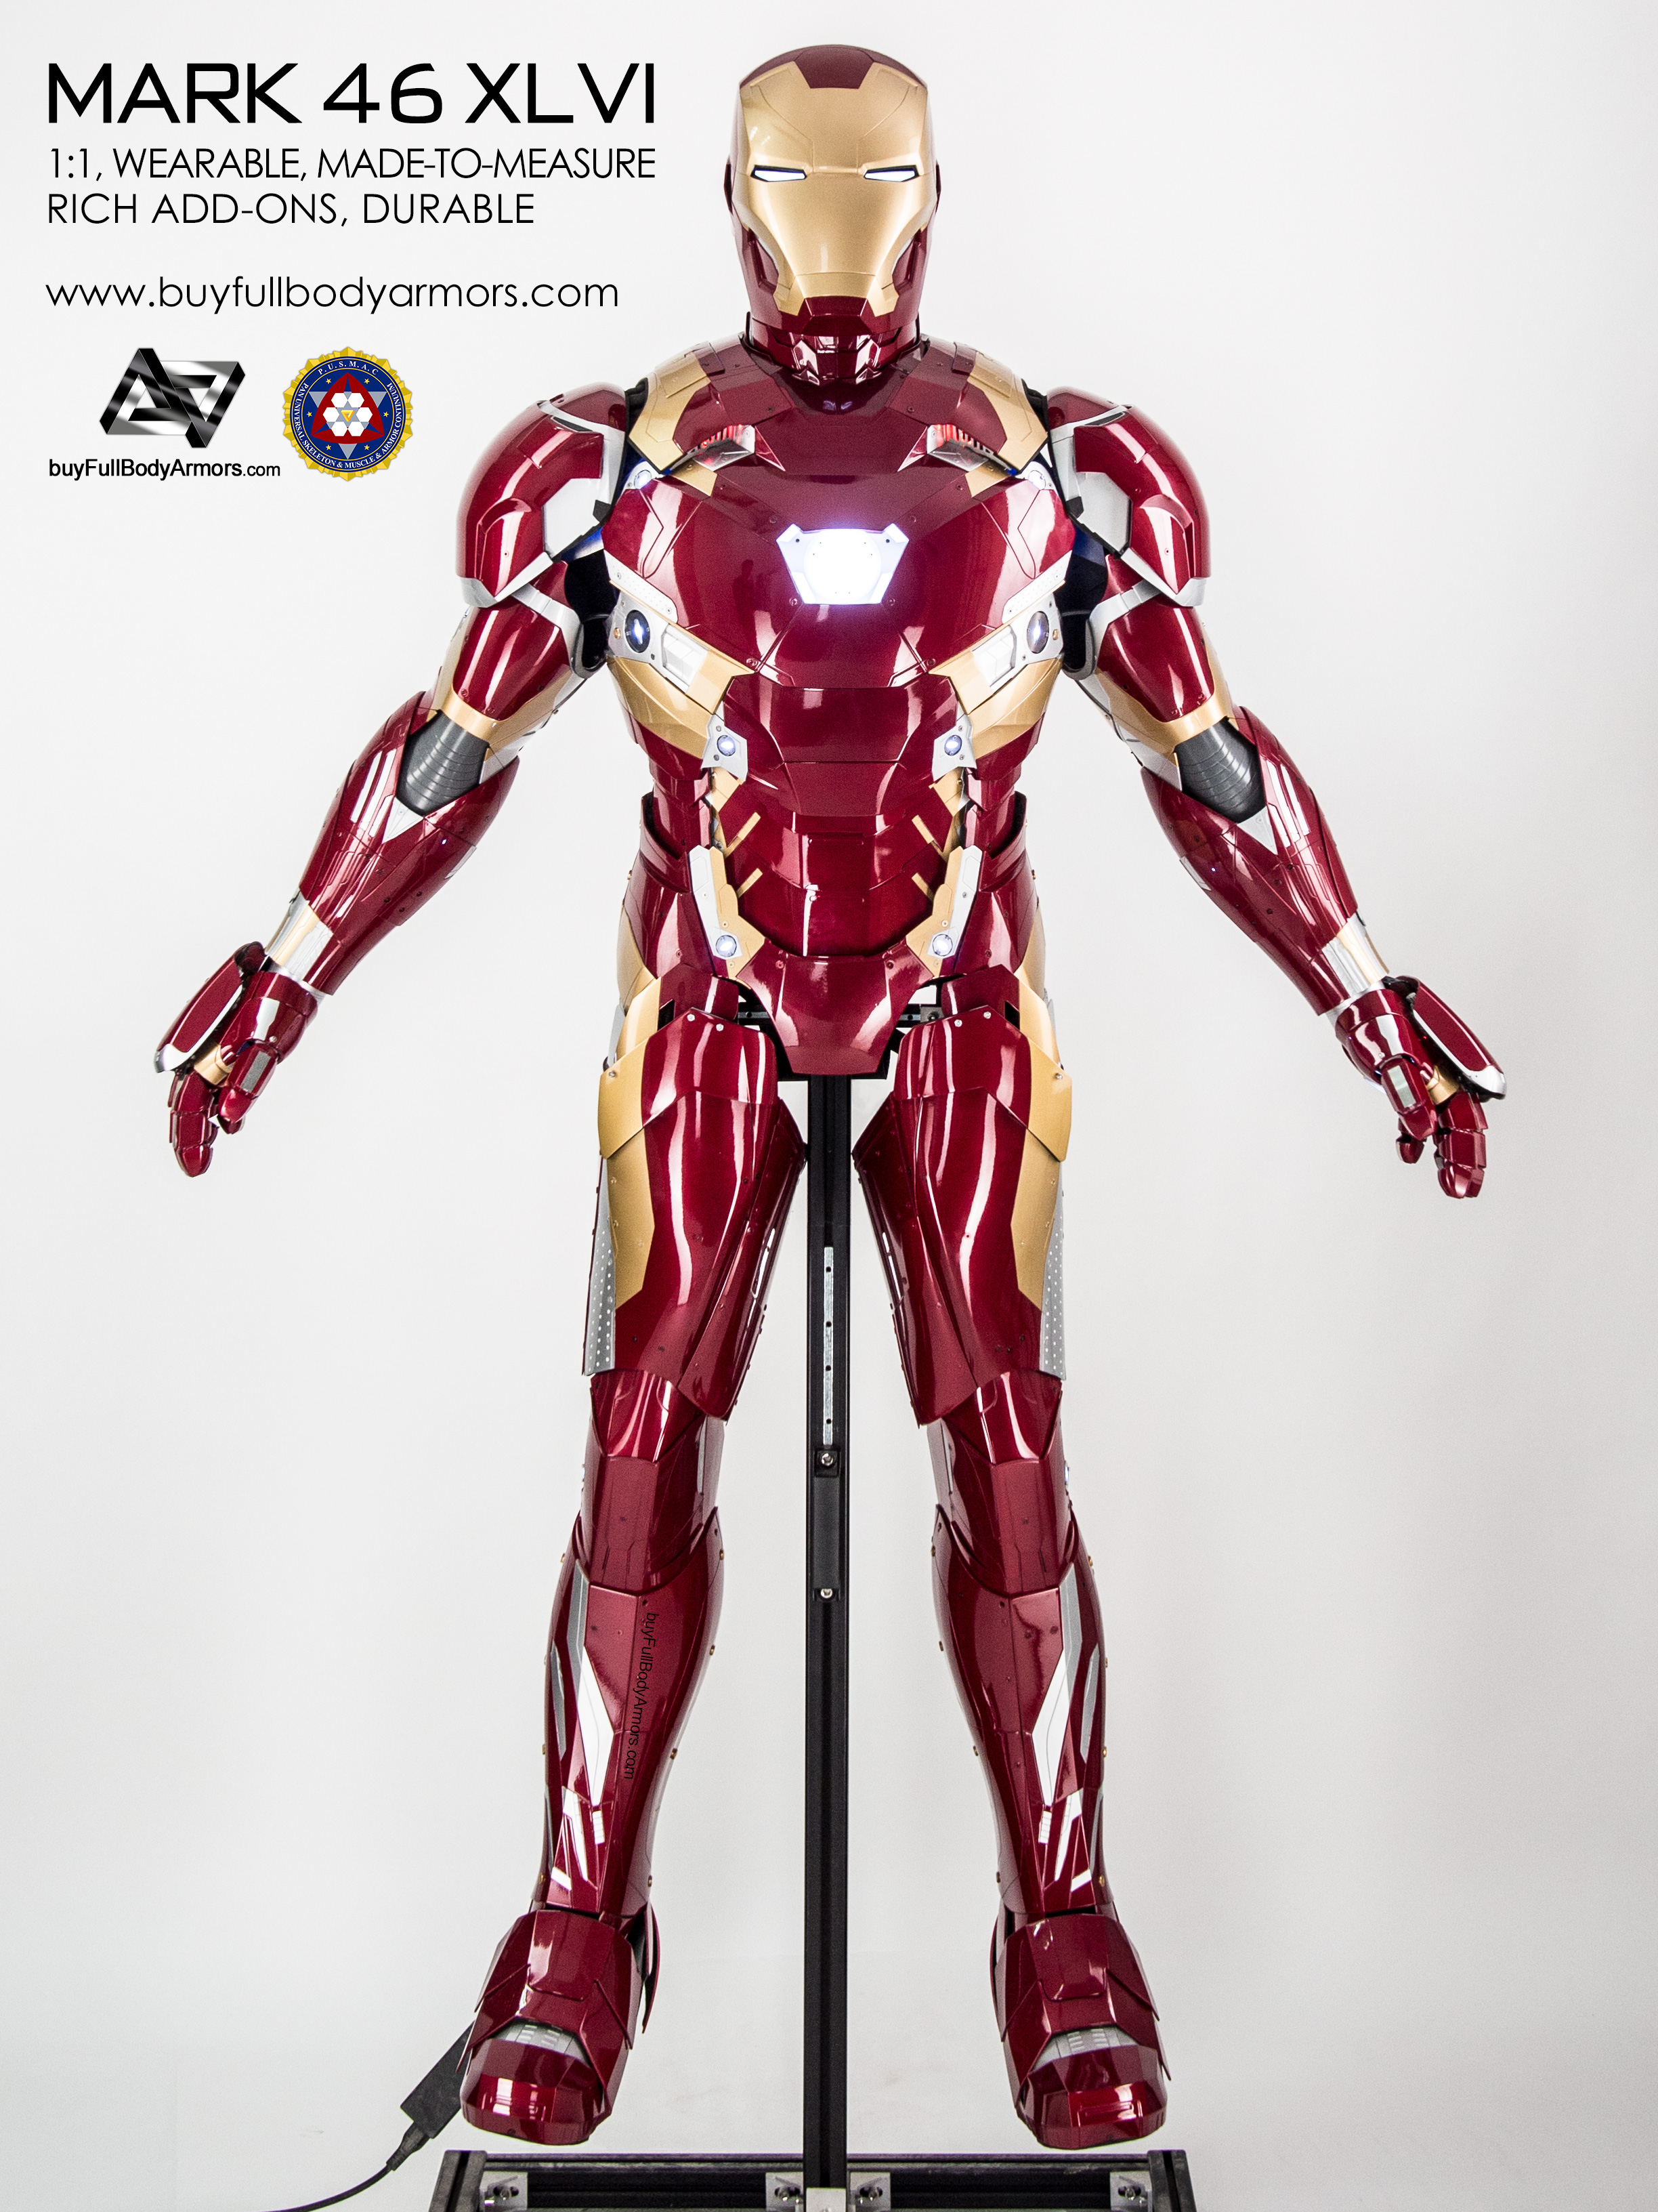 Photos of the Iron Man Mark 46 XLVI Wearable Armor Costume Suit front